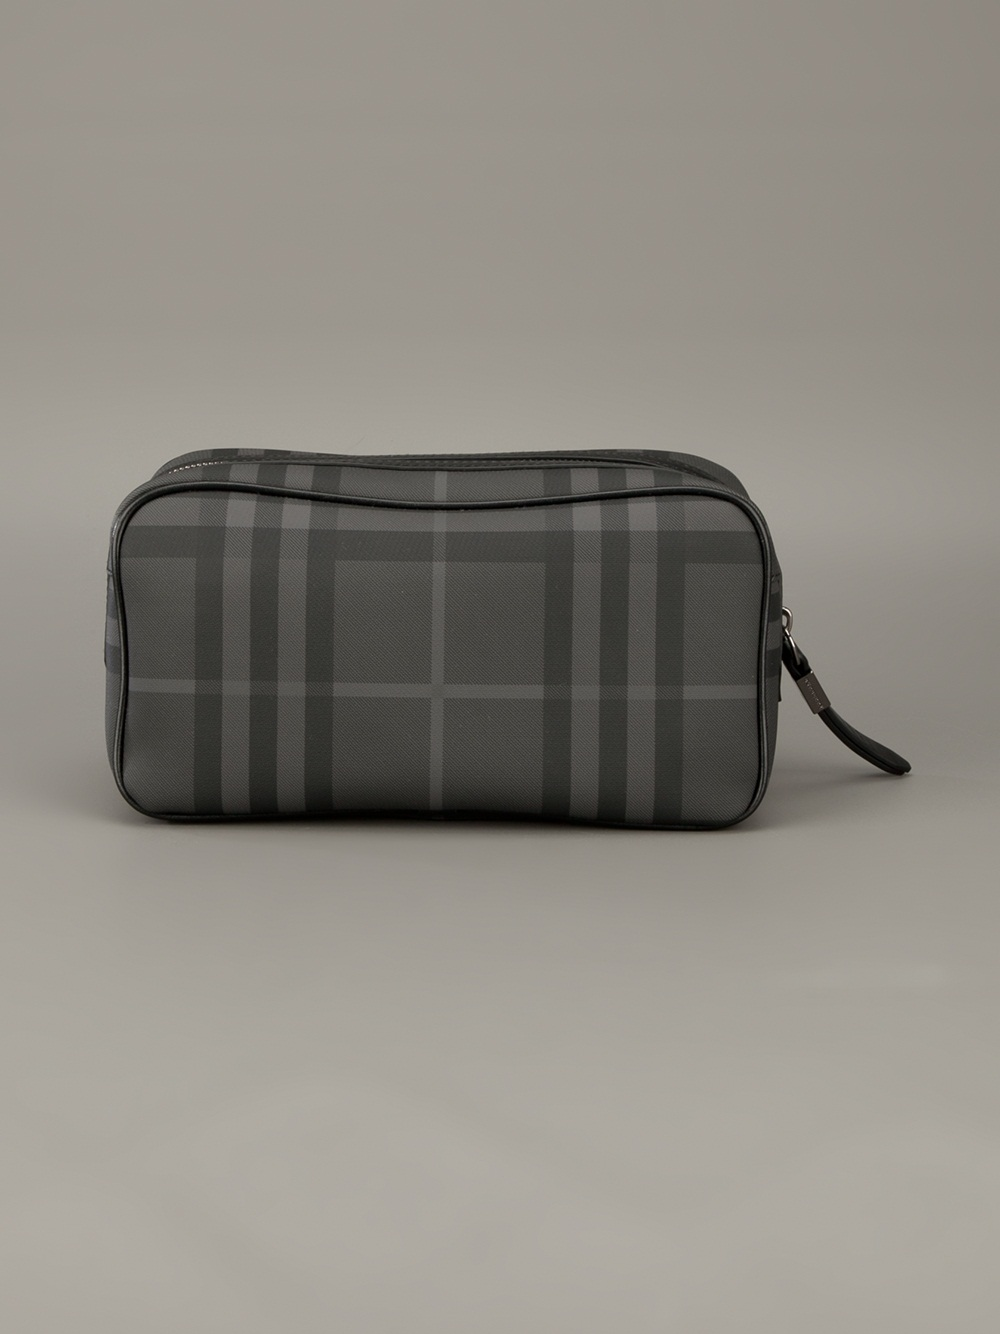 Burberry Brit Checked Wash Bag in Gray for Men - Lyst 985948b8182b0